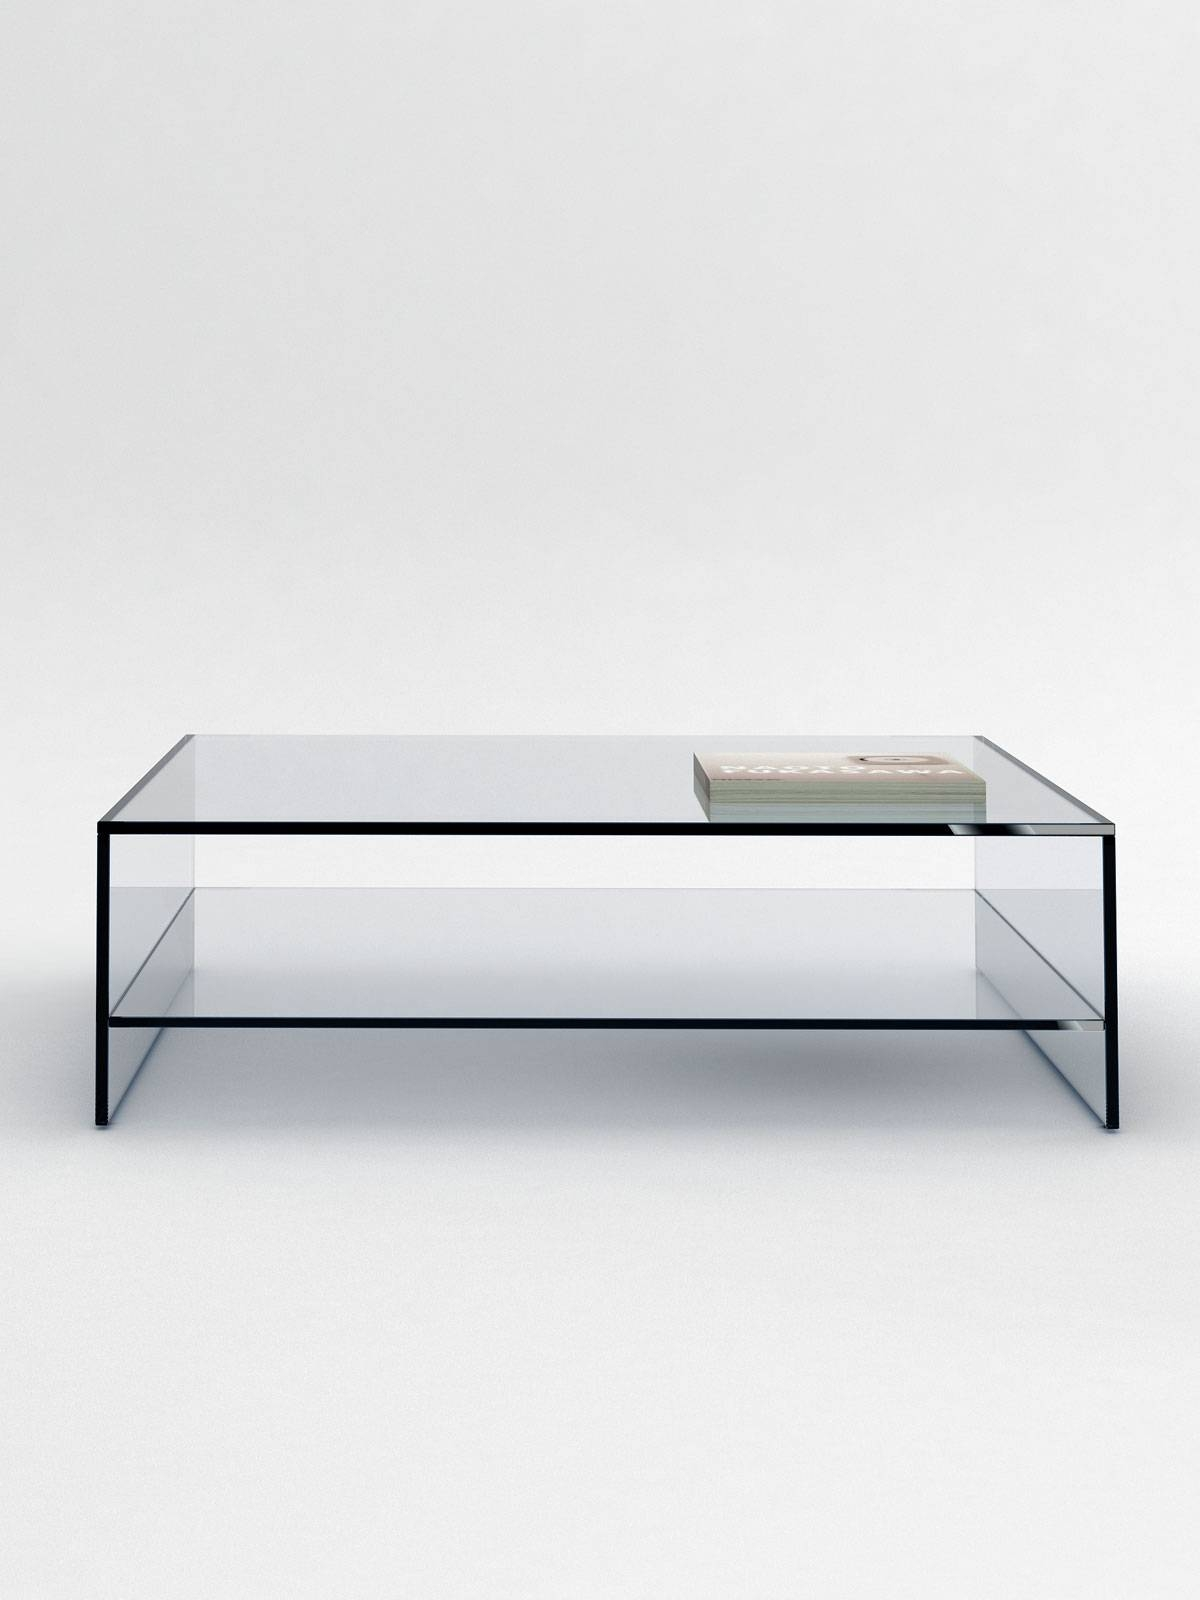 Glass Coffee Table With Shelf - Coffee Tables Made To Order. with regard to Glass Coffee Tables With Shelf (Image 17 of 30)